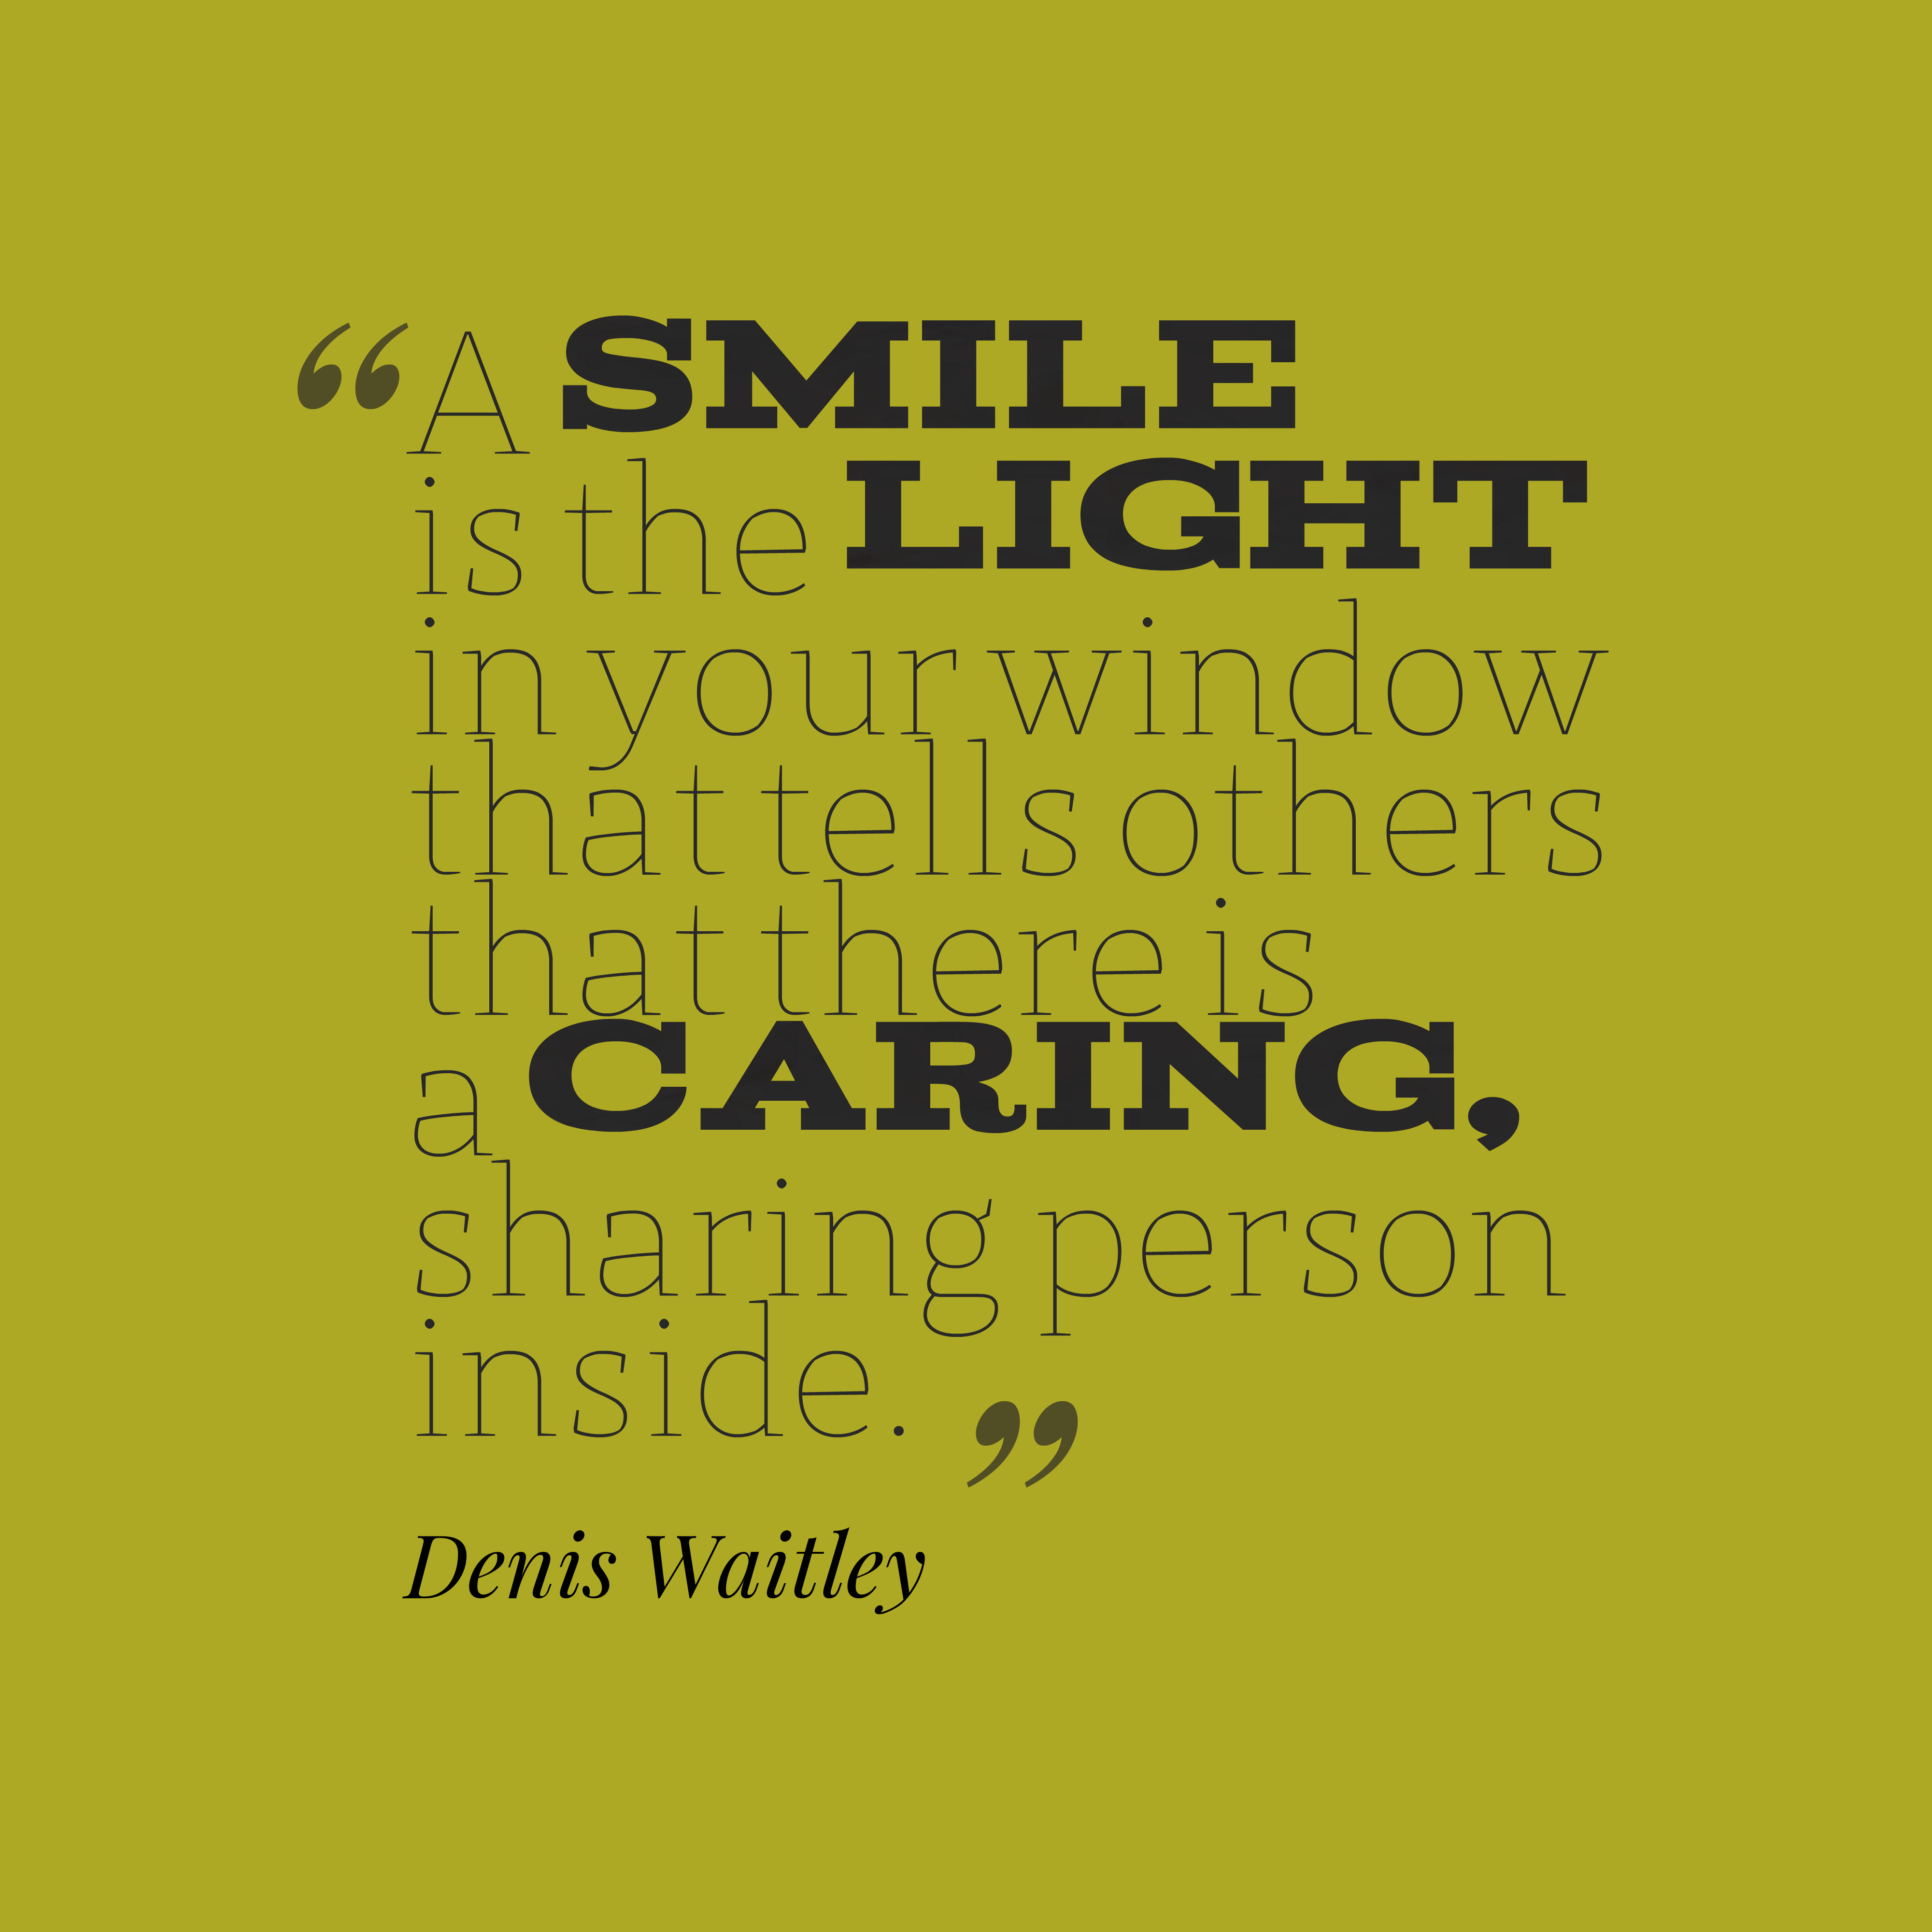 denis waitley quote about smile